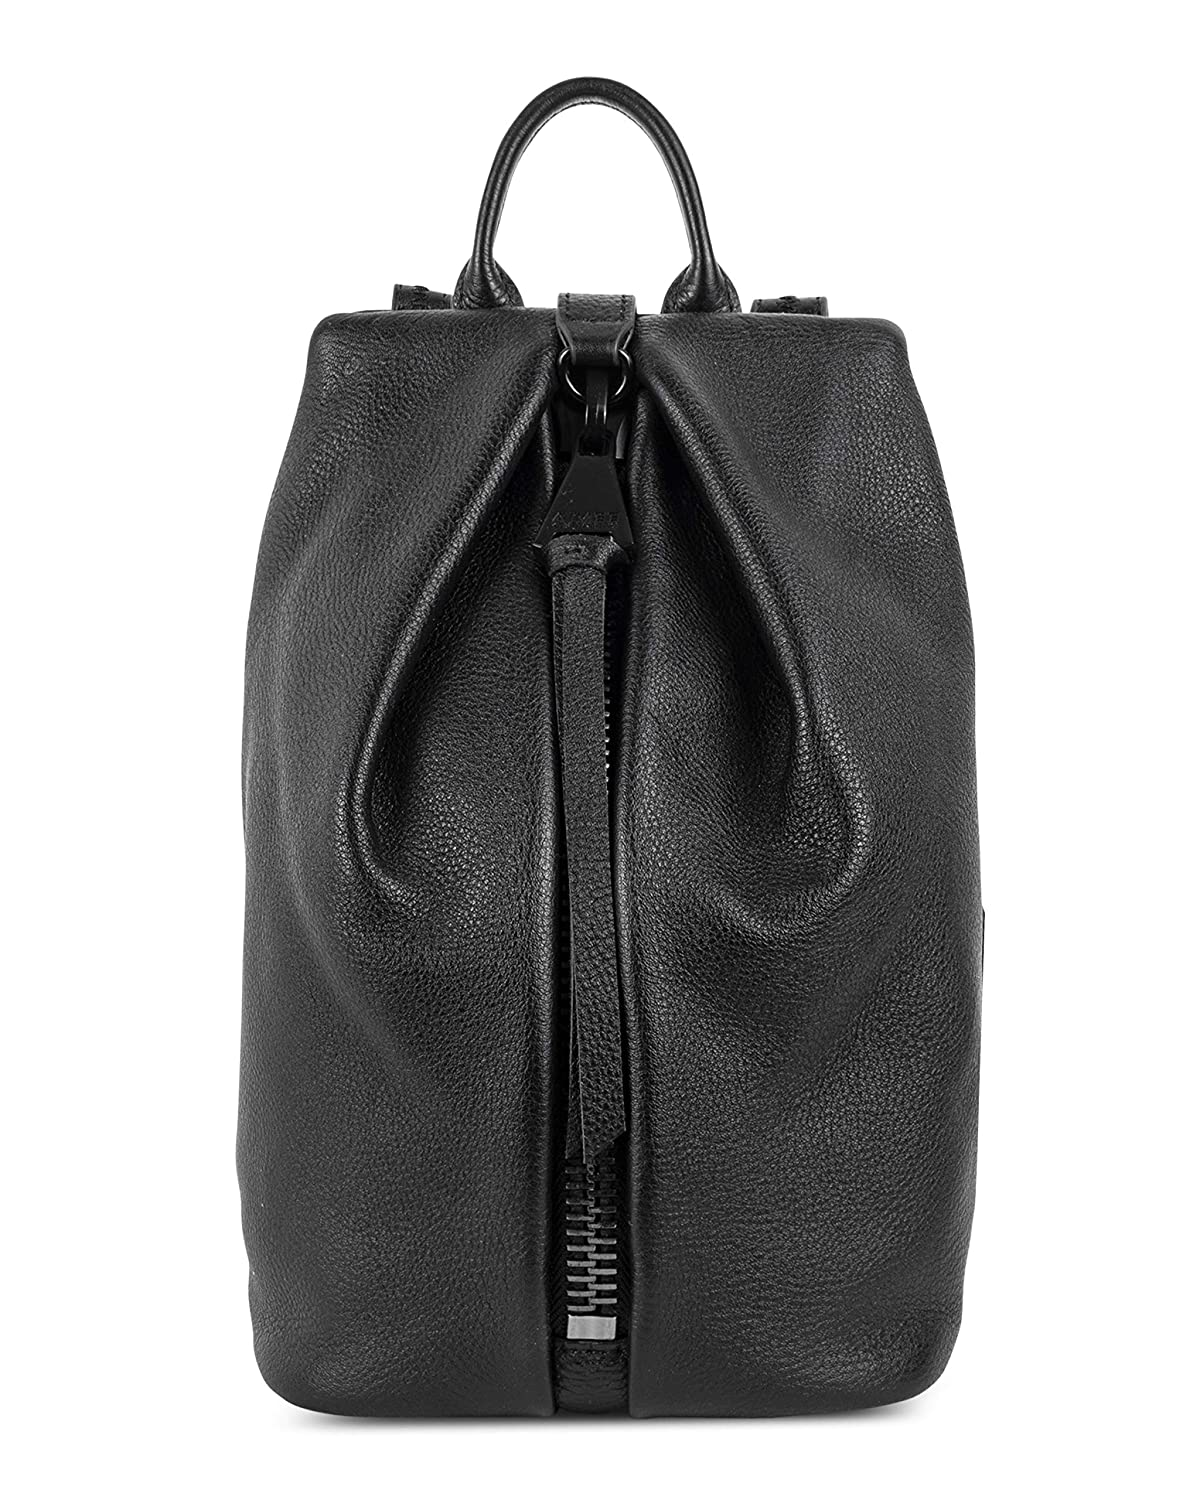 Image of Aimee Kestenberg Leather Tamitha Mini Fashion Backpack Casual Daypacks